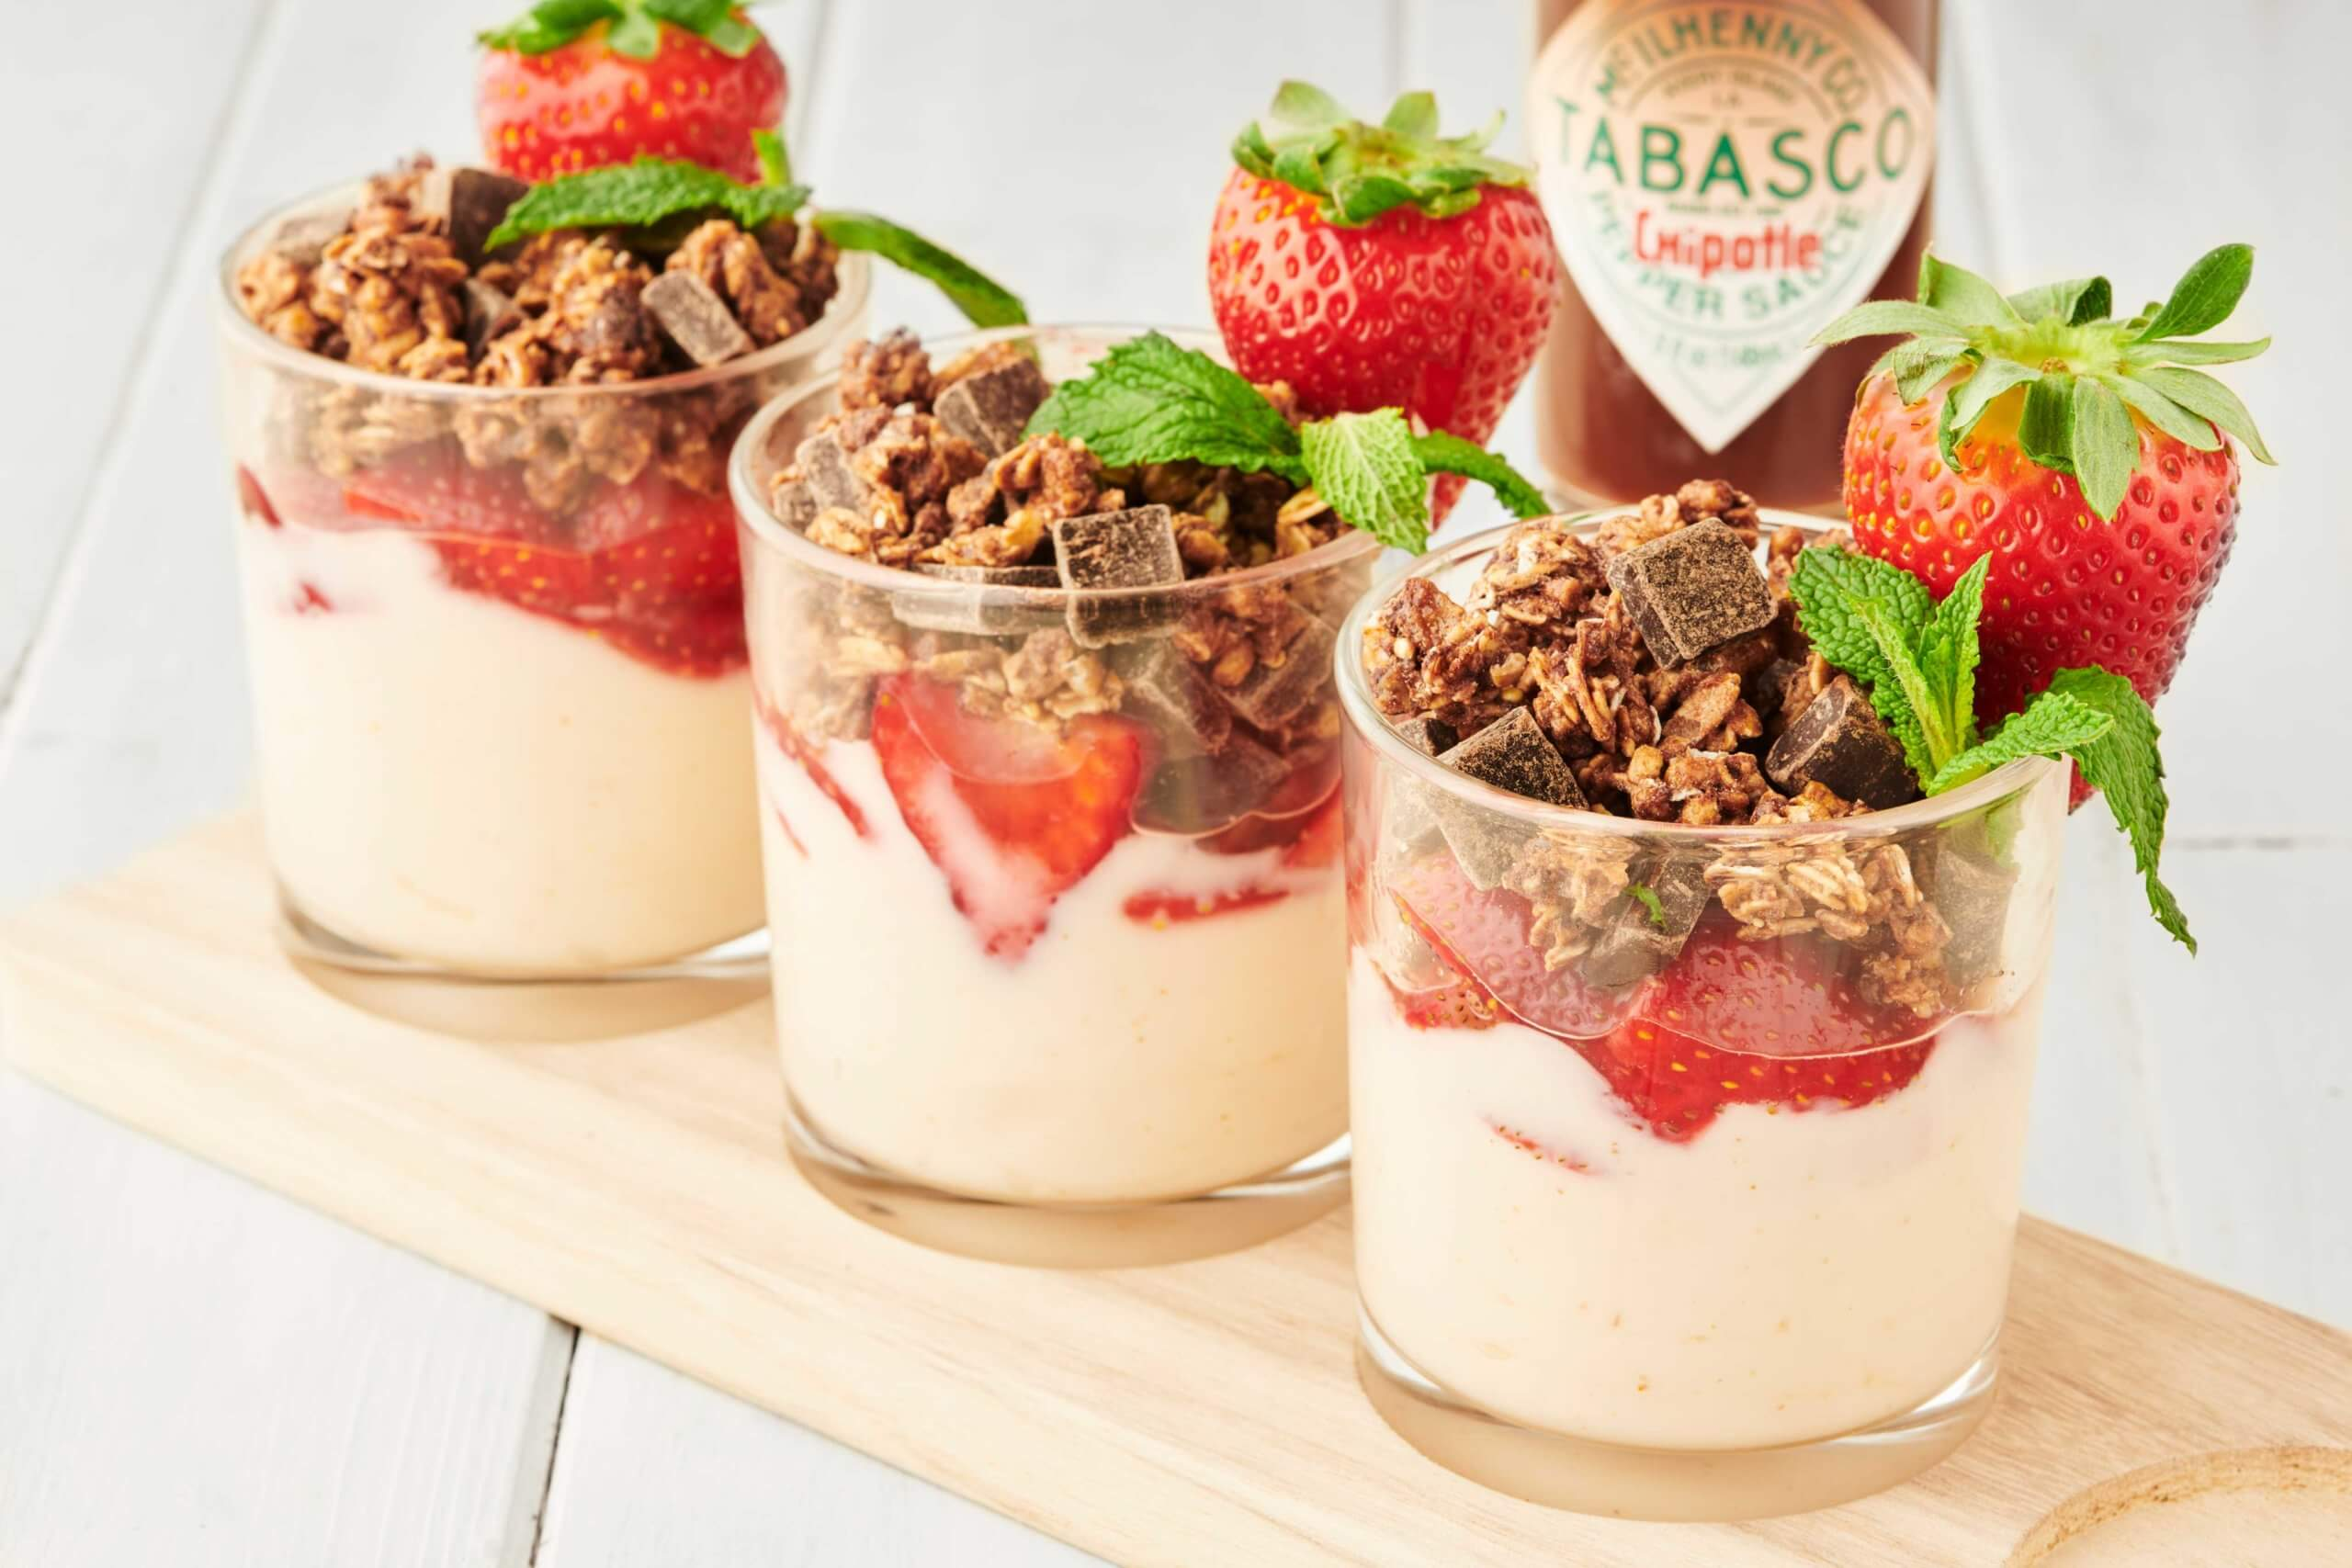 Strawberry Chipotle Yogurt Parfait